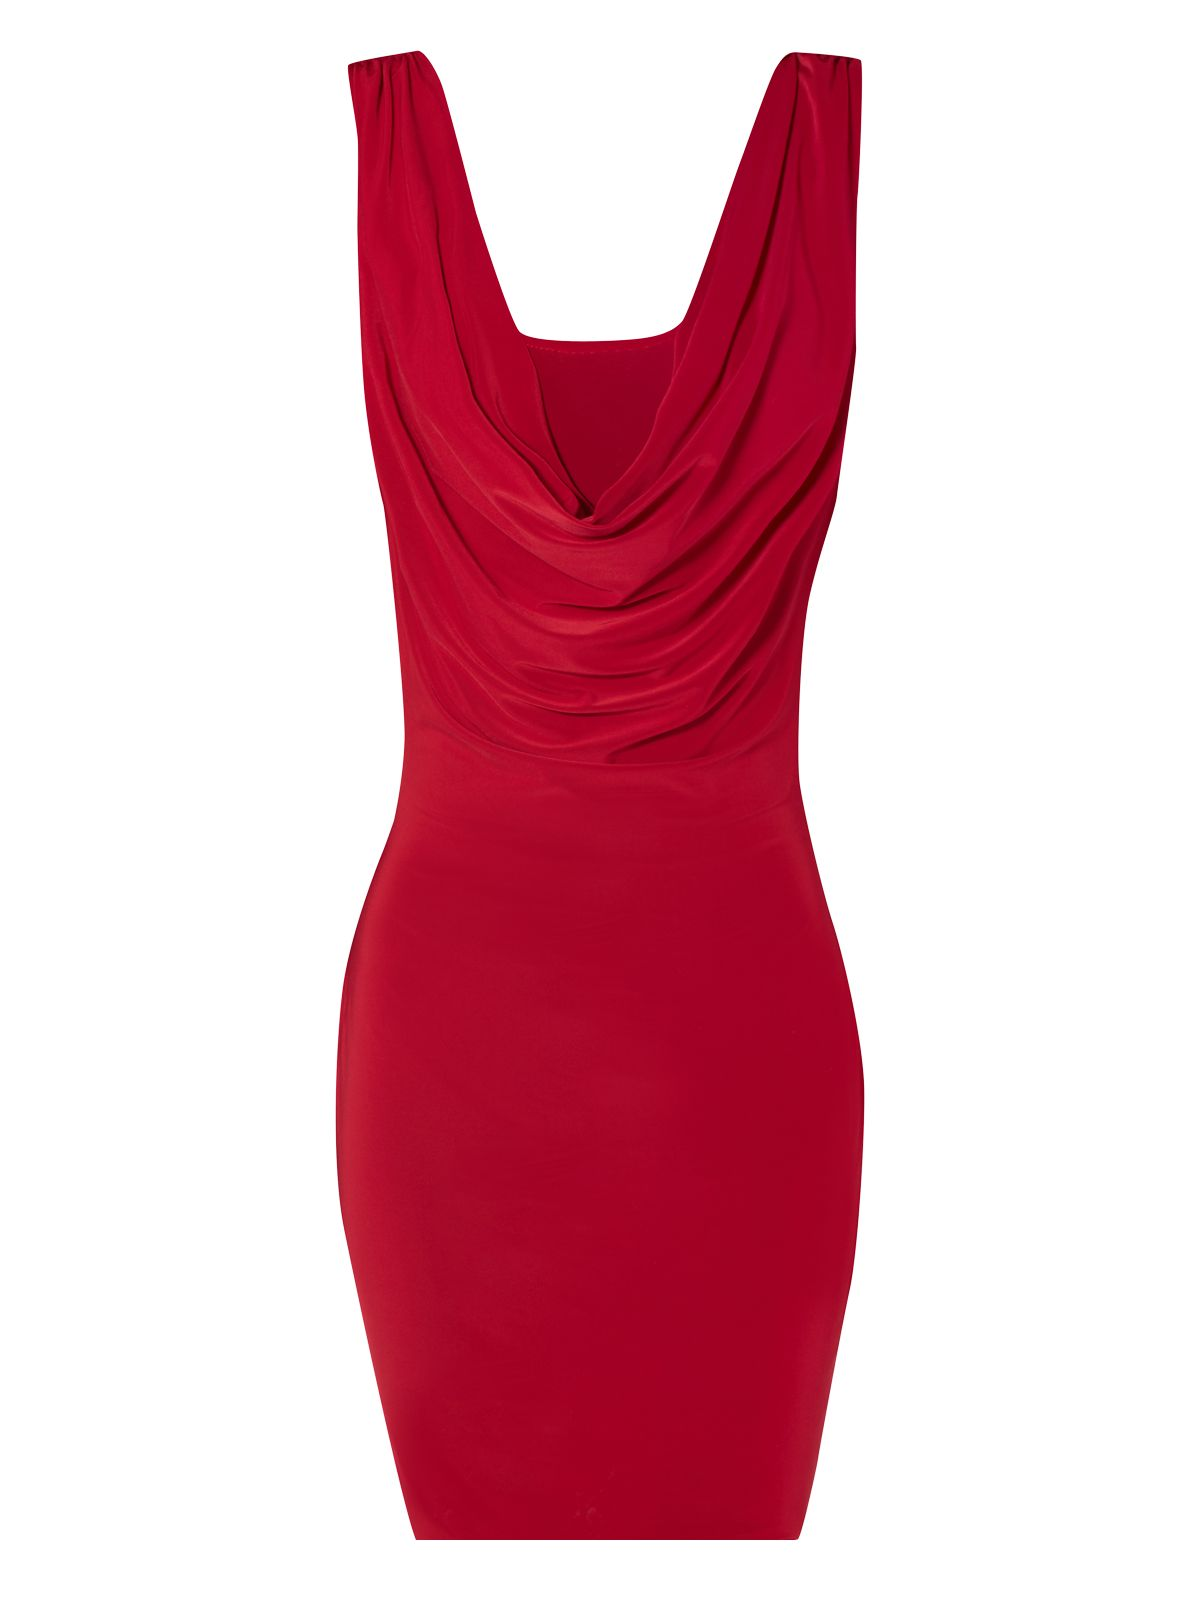 Jane norman Back Cowl Dress in Red | Lyst